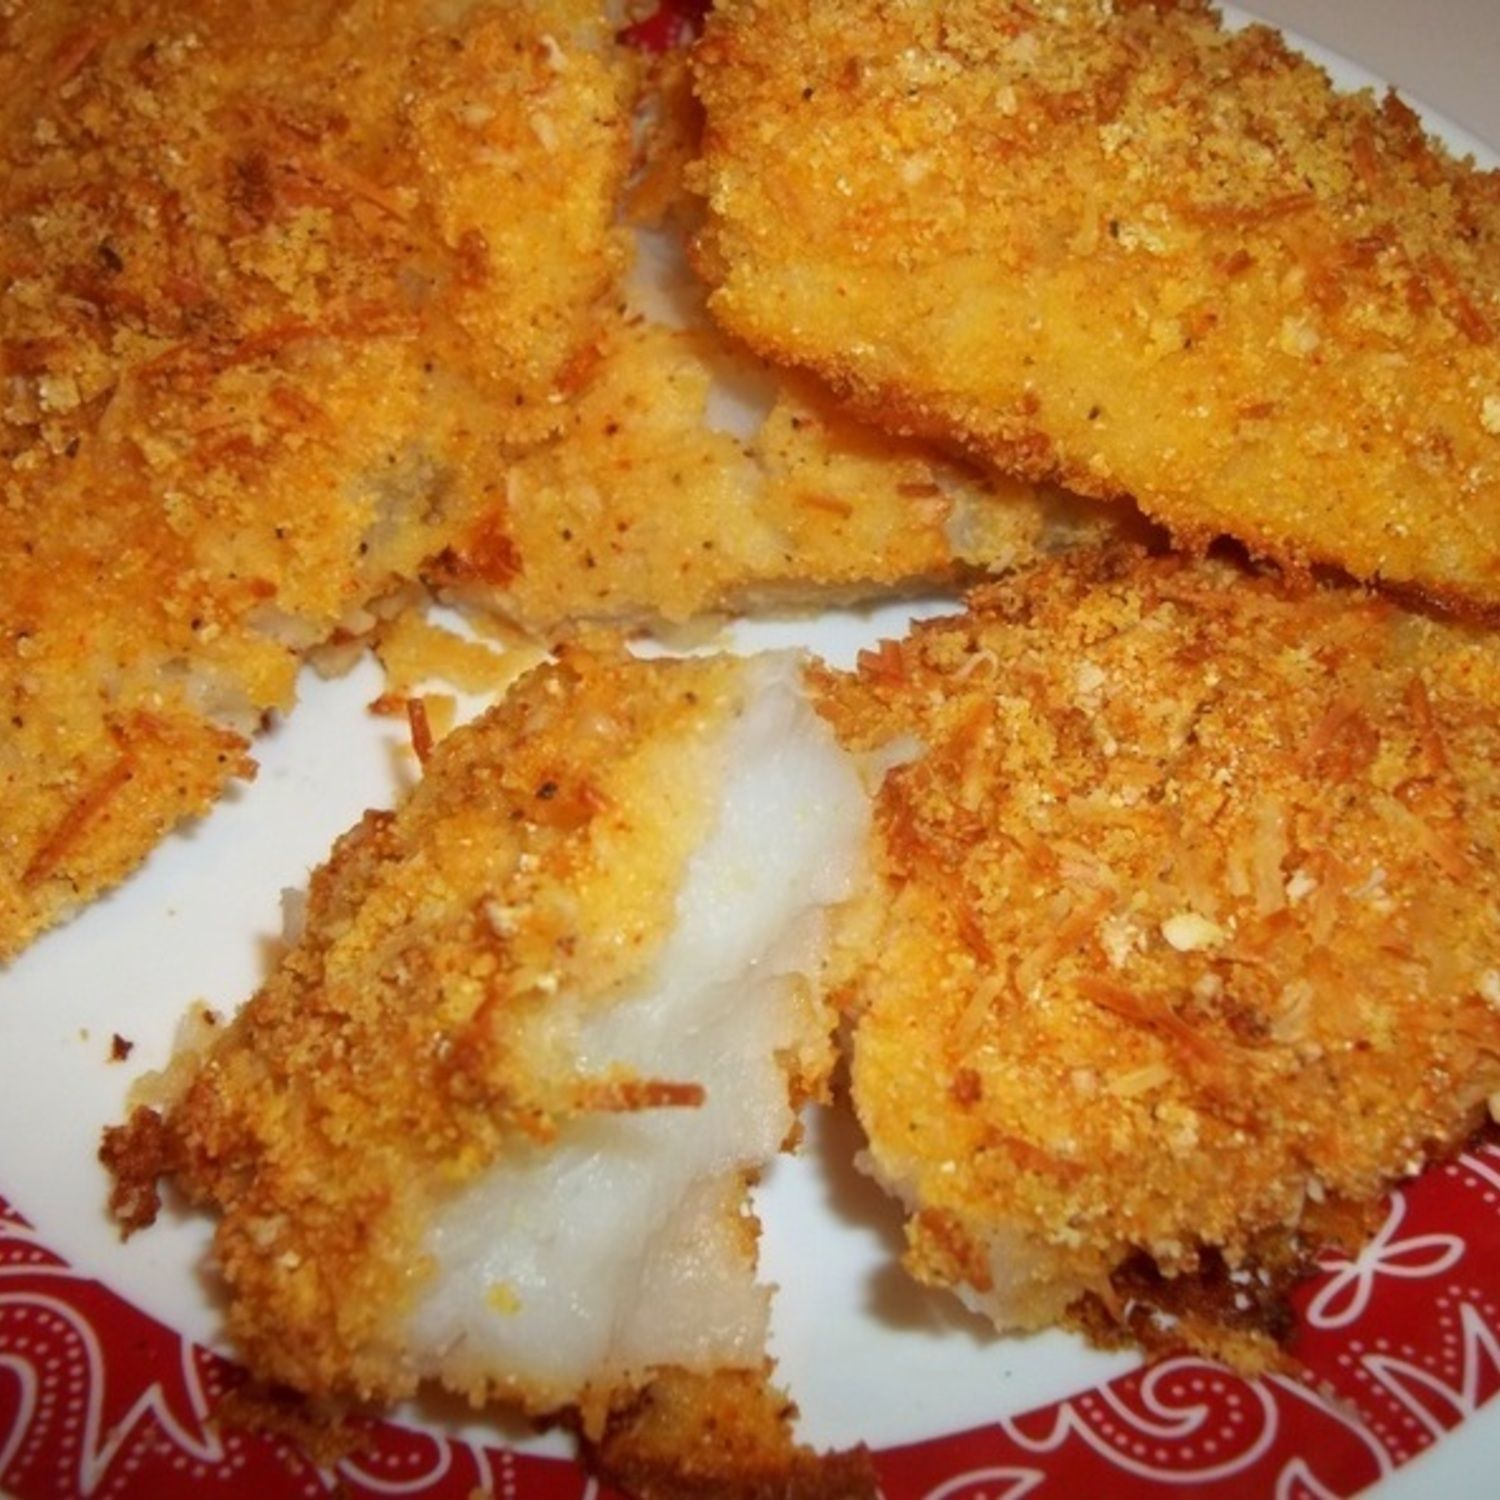 Oven Fried Cod Delicious Oven Fried Cod Recipe | Just A Pinch Recipes - Leave out the onion and garlic salt to make low fodmap.Delicious Oven Fried Cod Recipe | Just A Pinch Recipes - Leave out the onion and garlic salt to make low fodmap.